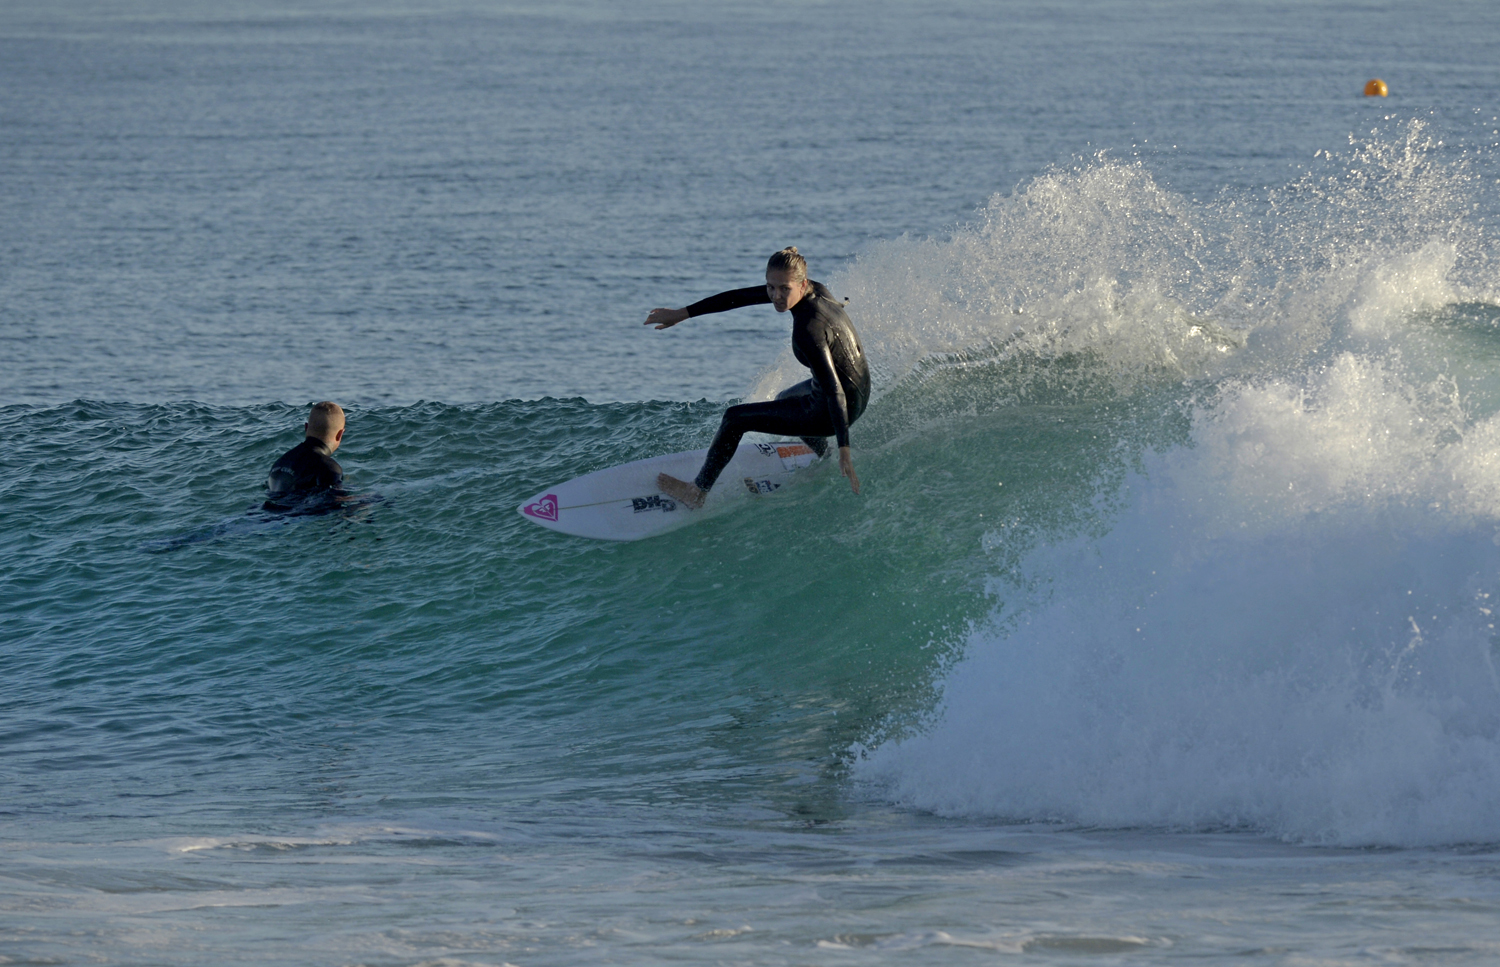 Wahu groms go surfing with Woolies by Wahu in Inala QLD